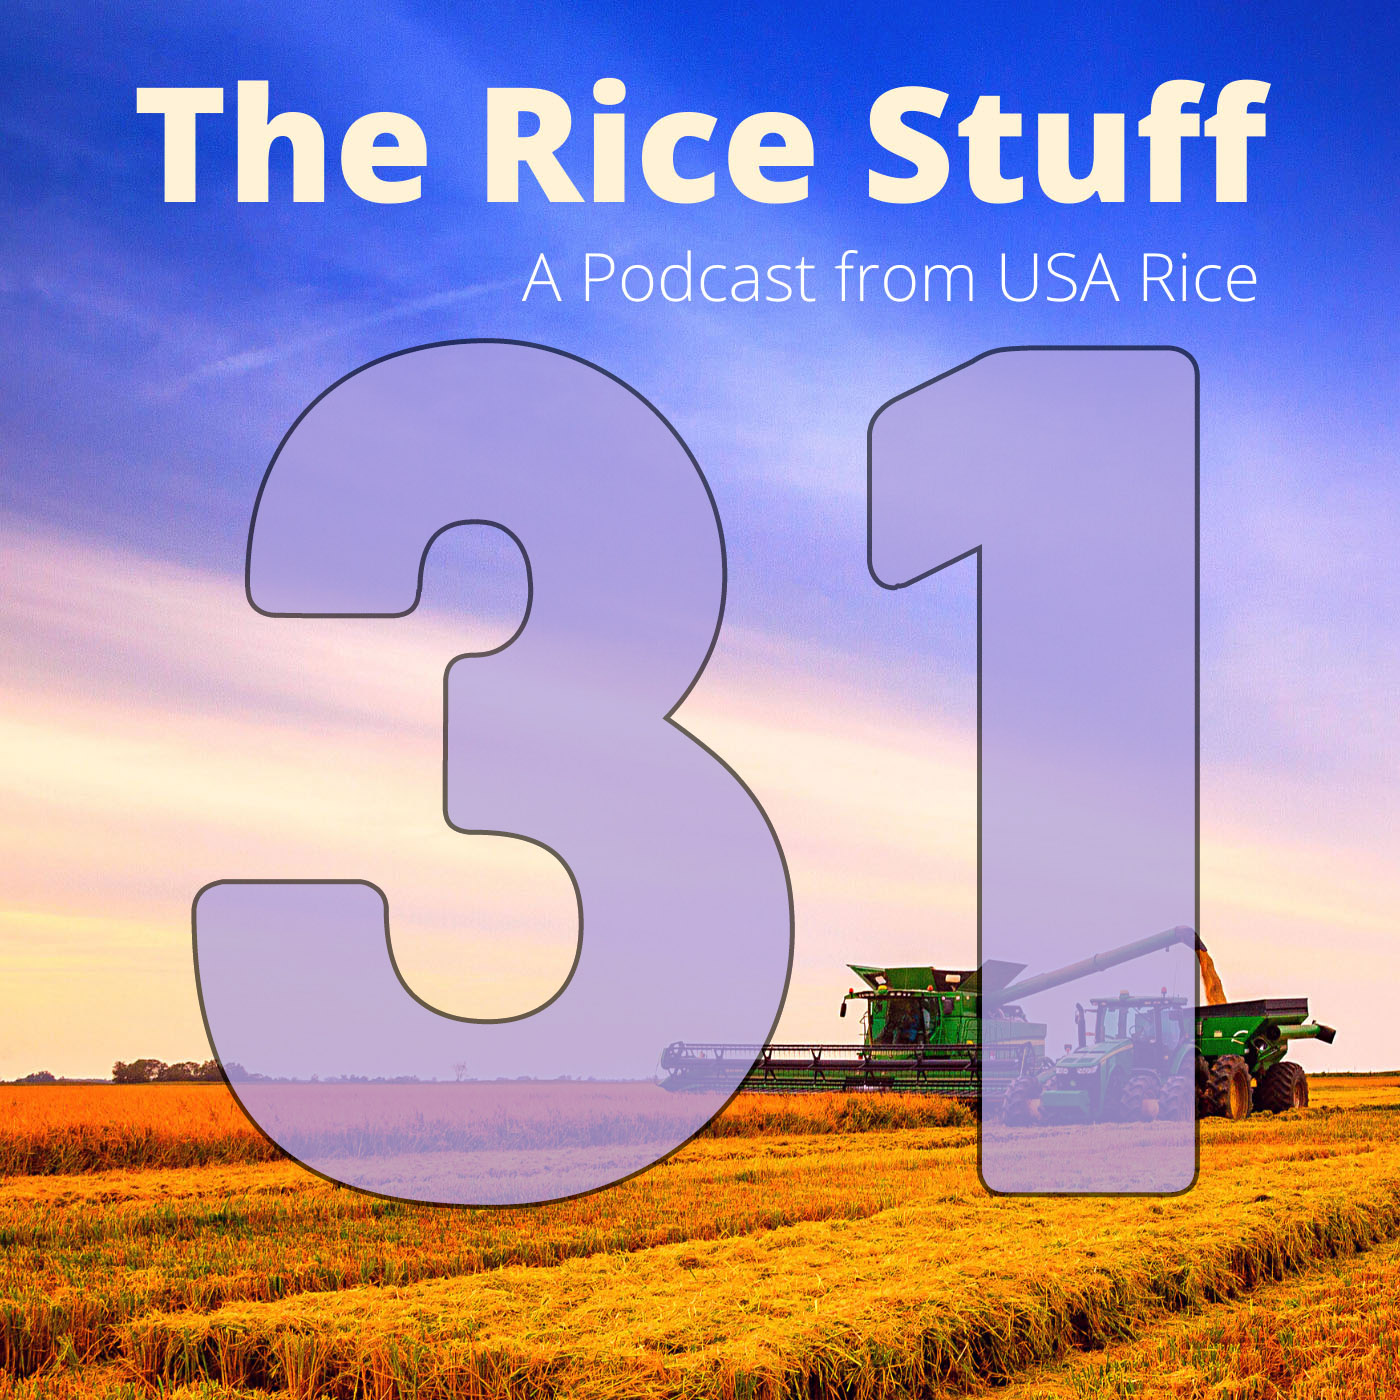 Number 31 superimposed over photo of combine and grain cart in mature rice field